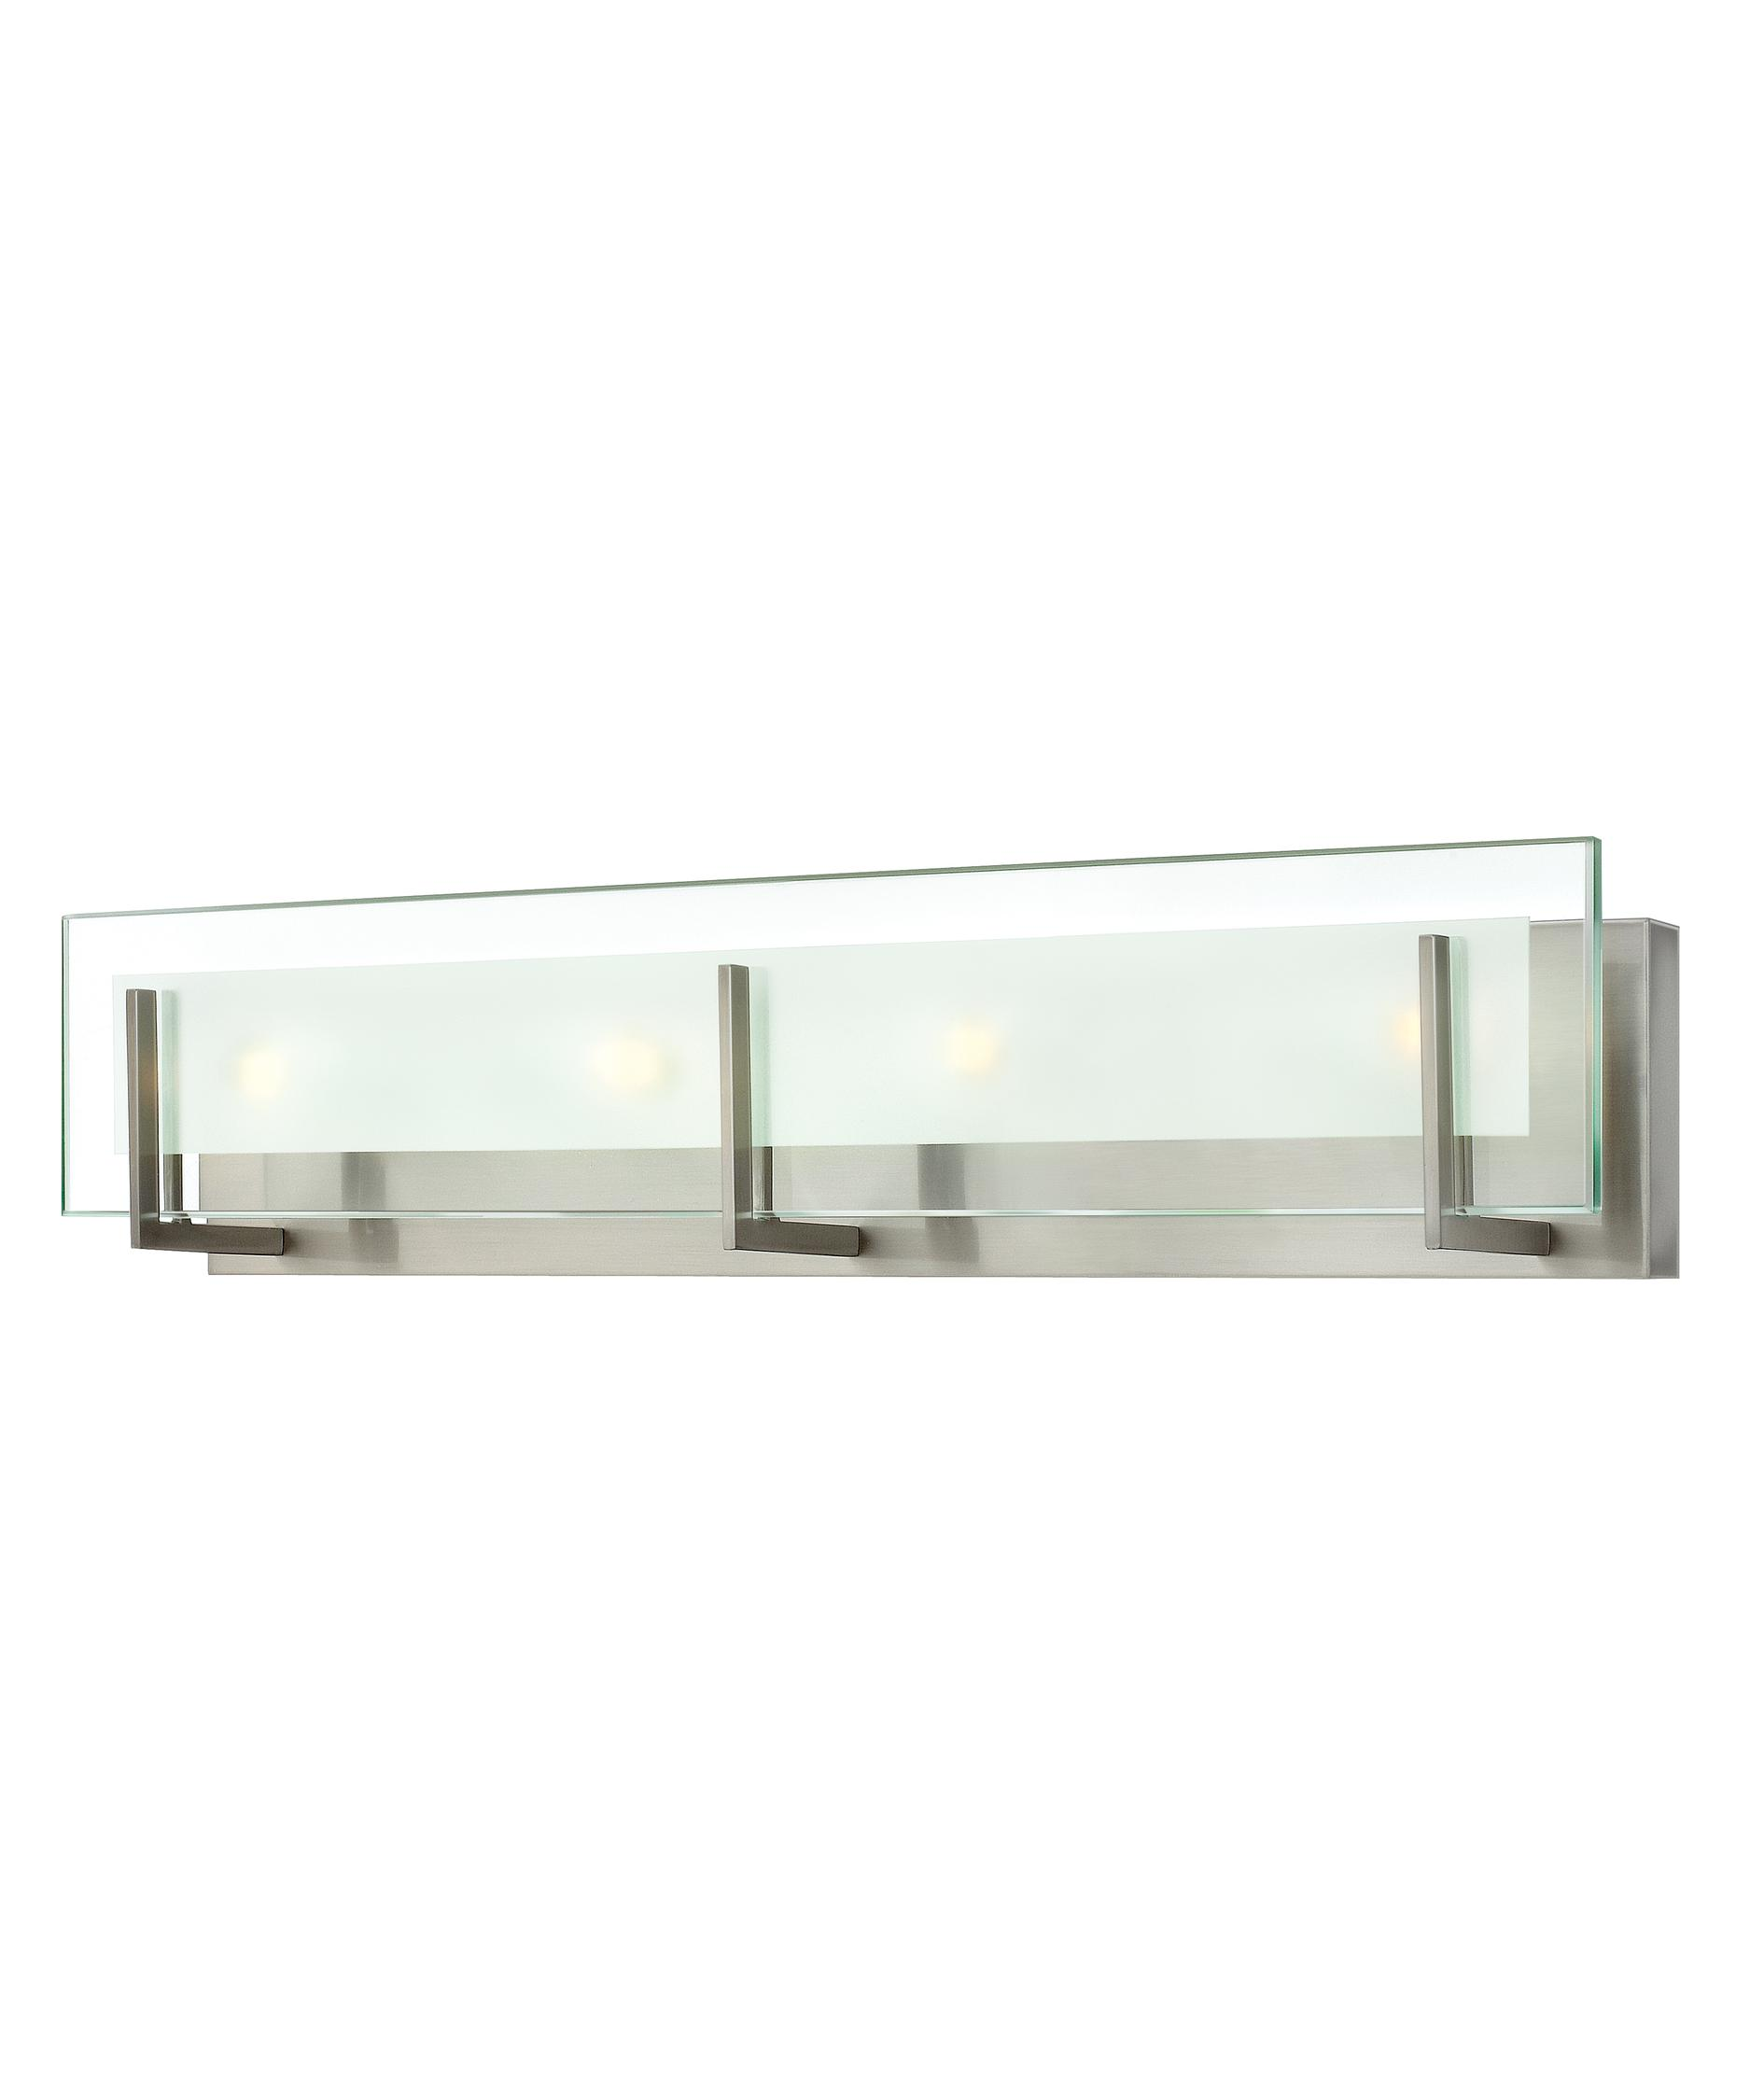 Hinkley lighting latitude 26 inch bath vanity light for Hinkley bathroom vanity lighting